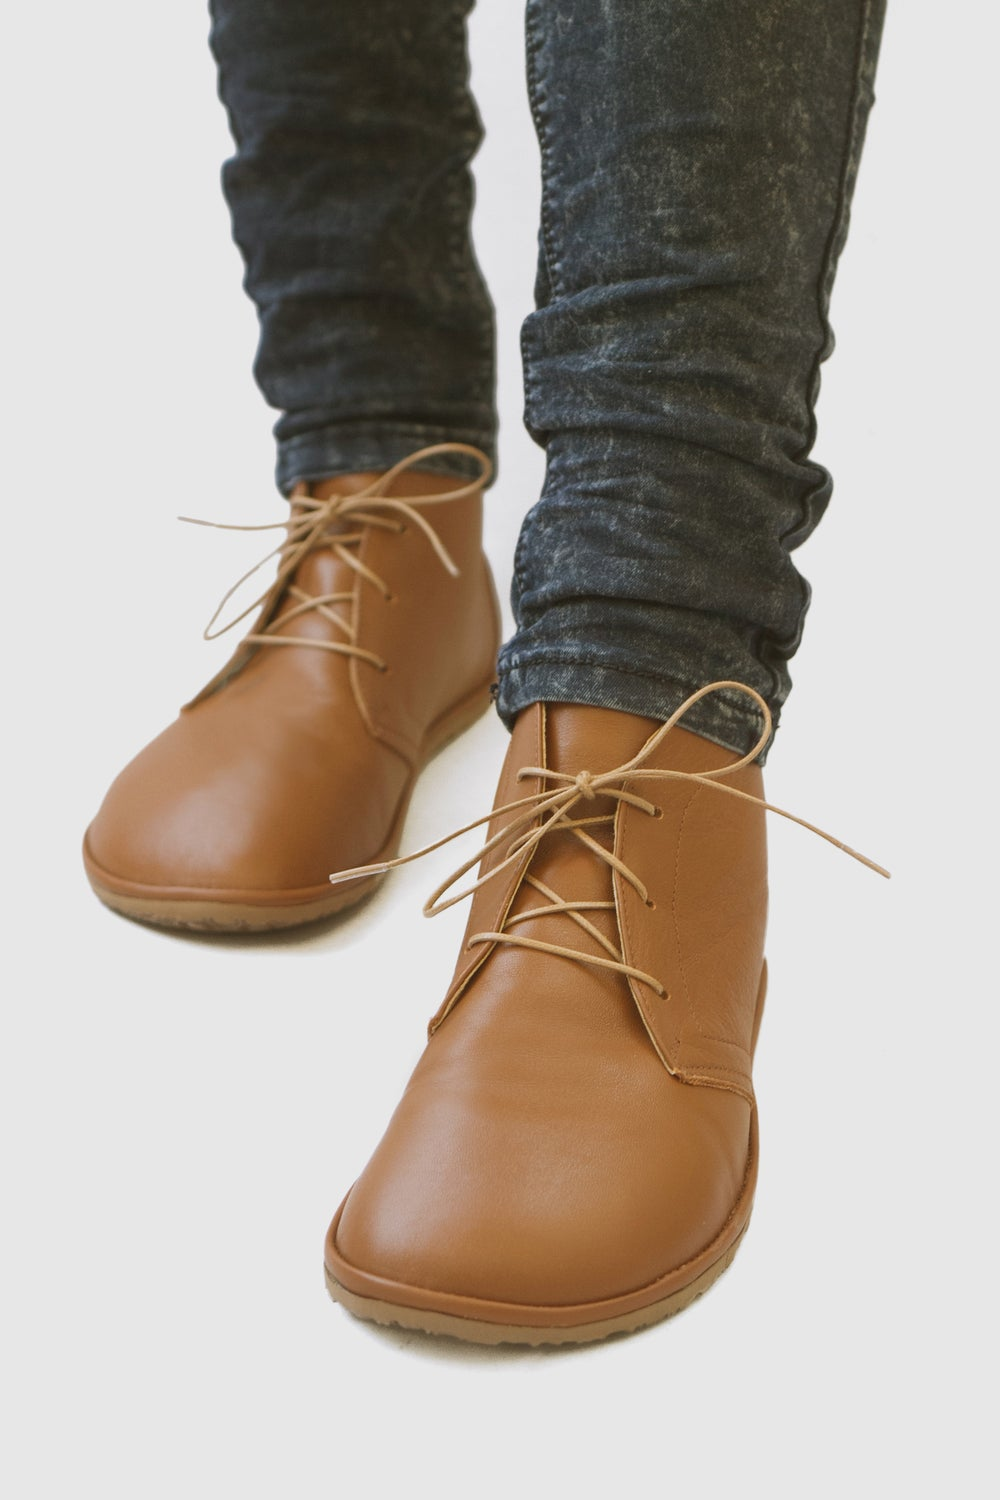 Image of Leona boots in Sepia Brown